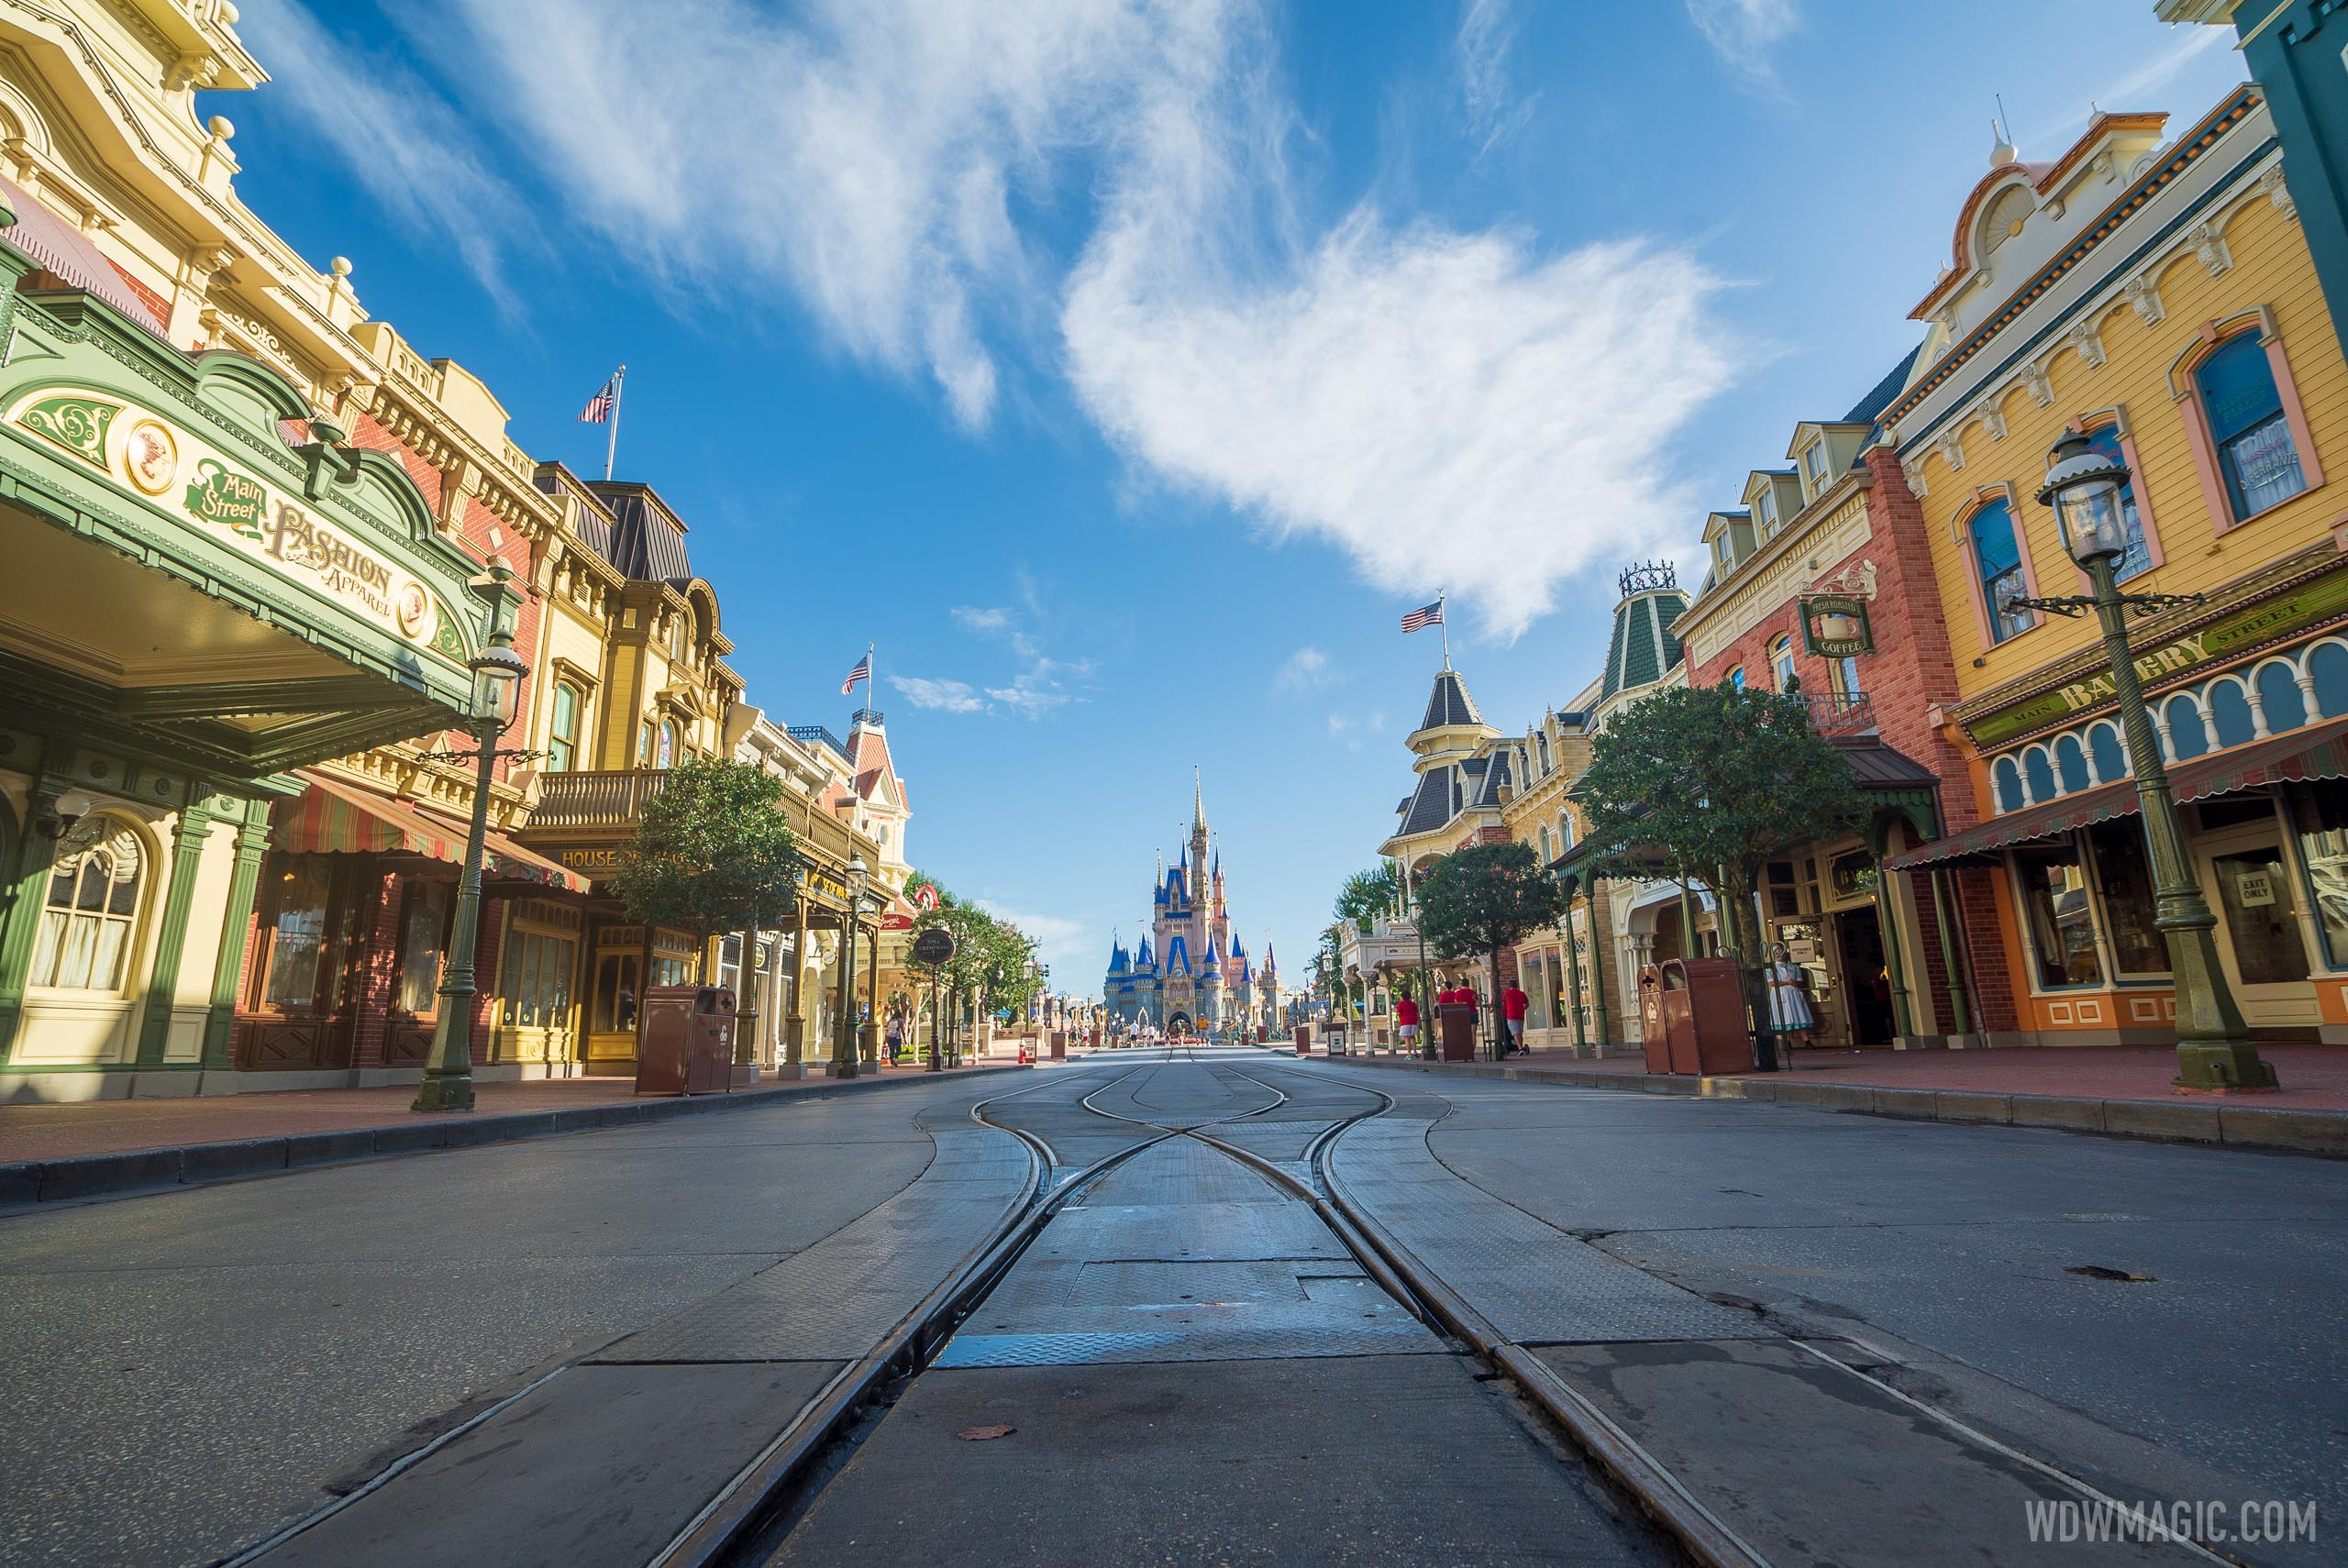 Magic Kingdom will again welcome Cast Members using complimentary admission